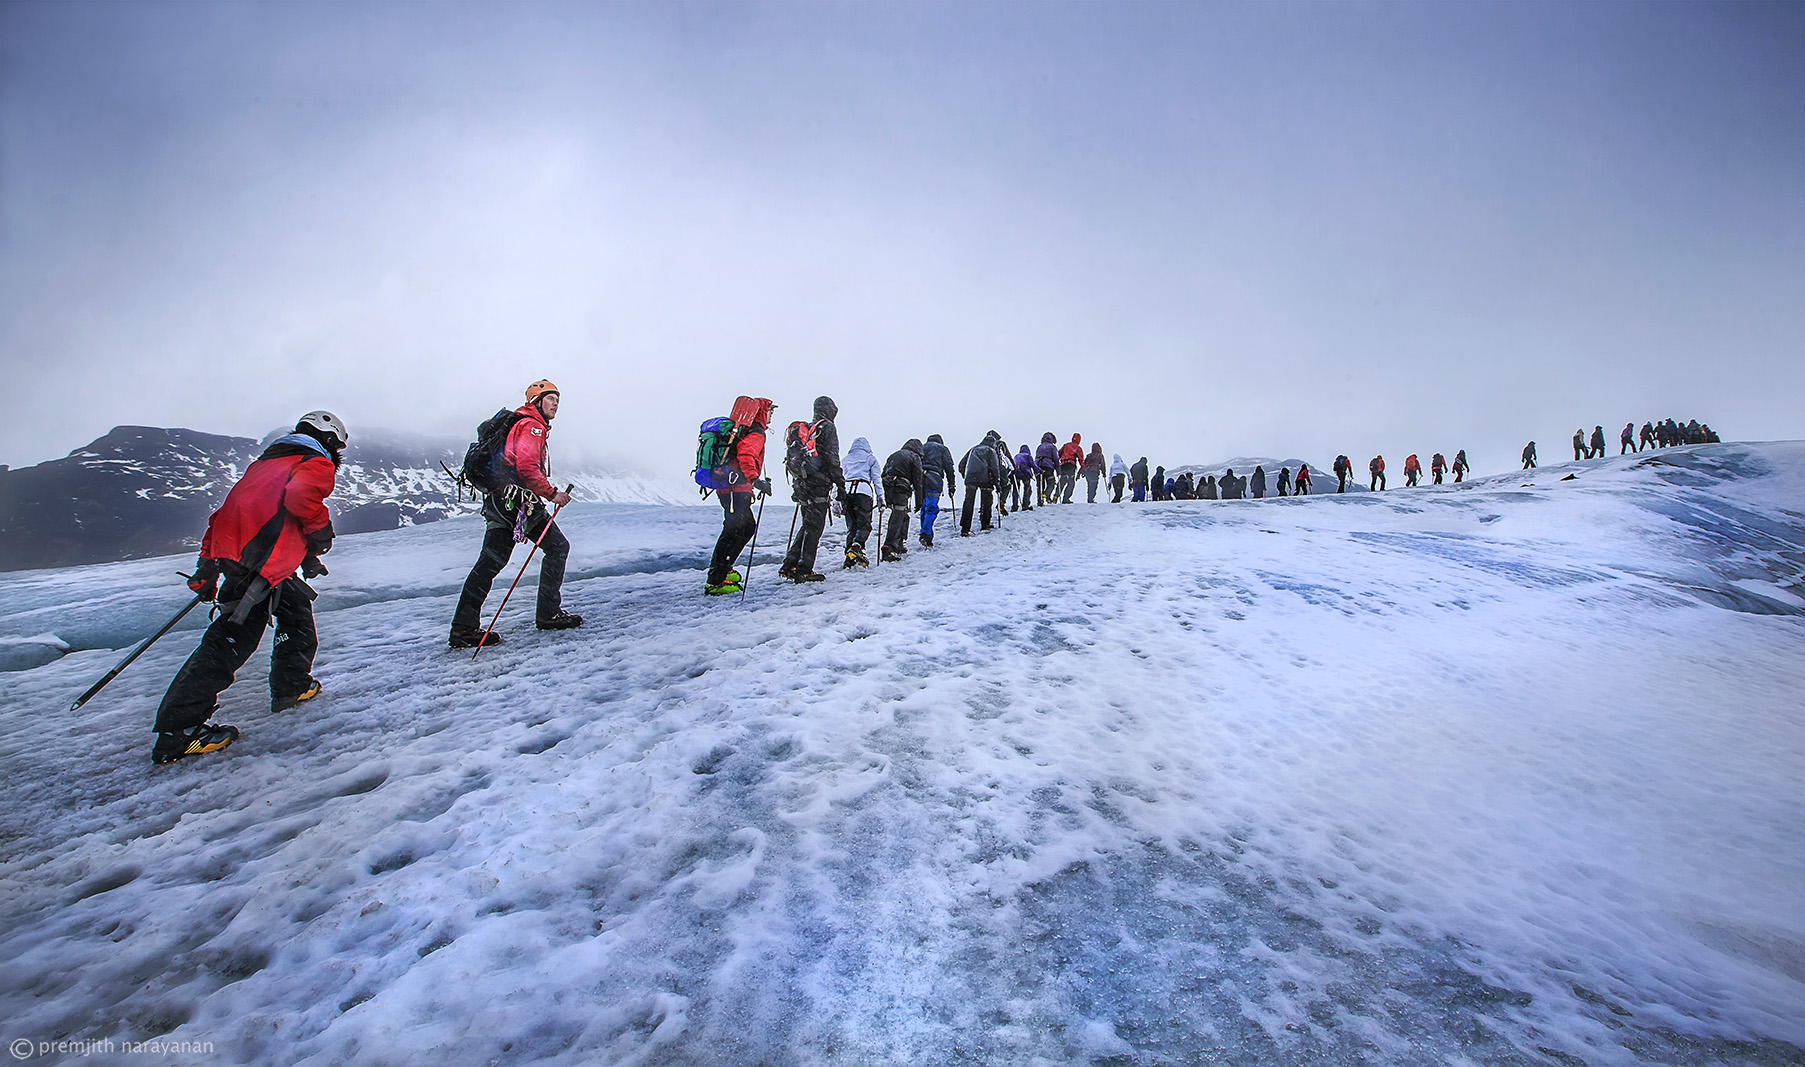 9. Climbing the glacier with the big group